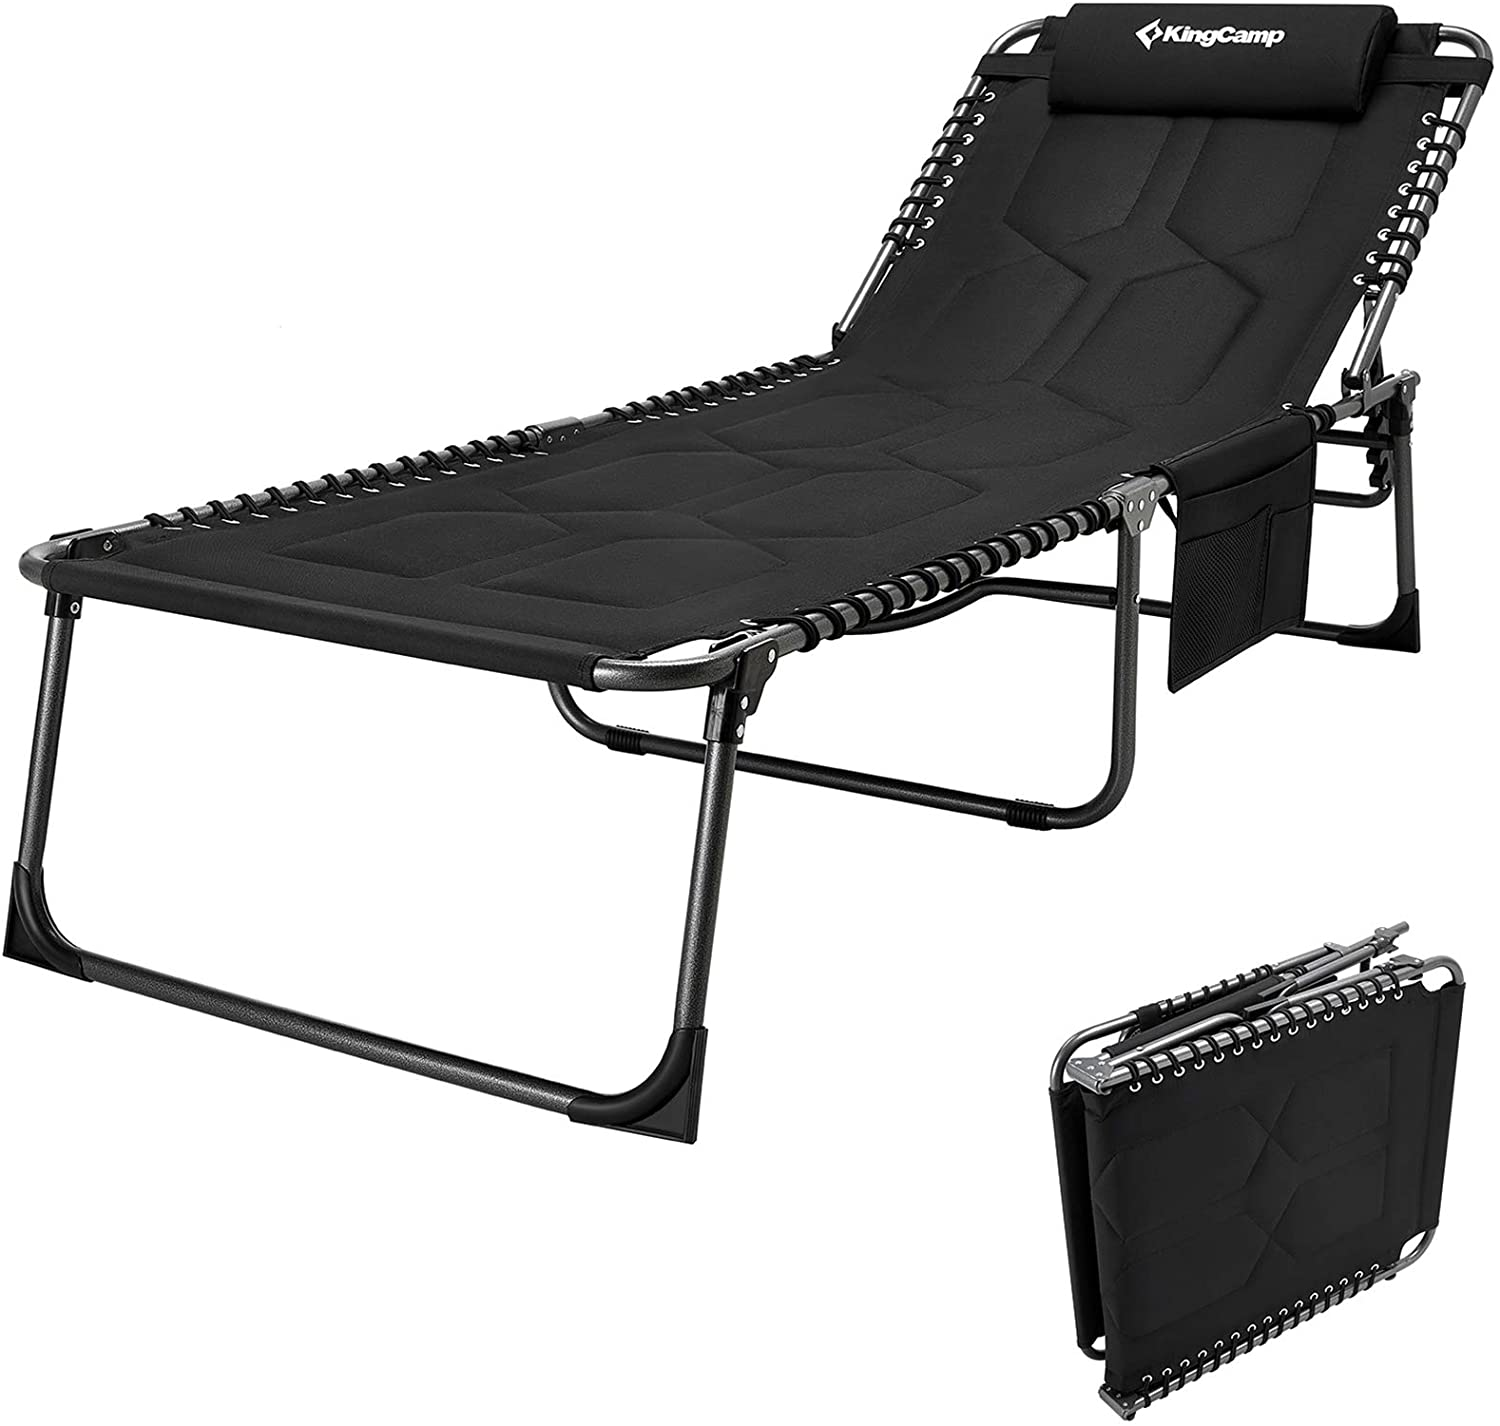 KingCamp 4-Fold Oversize Folding Chaise Lounge Chair for Outdoor, Indoor, Beach, Patio, Lawn, Heavy-Duty Adjustable Camping Recliner with Pillow, Cotton Padded, Side Pocket, Support 330lb